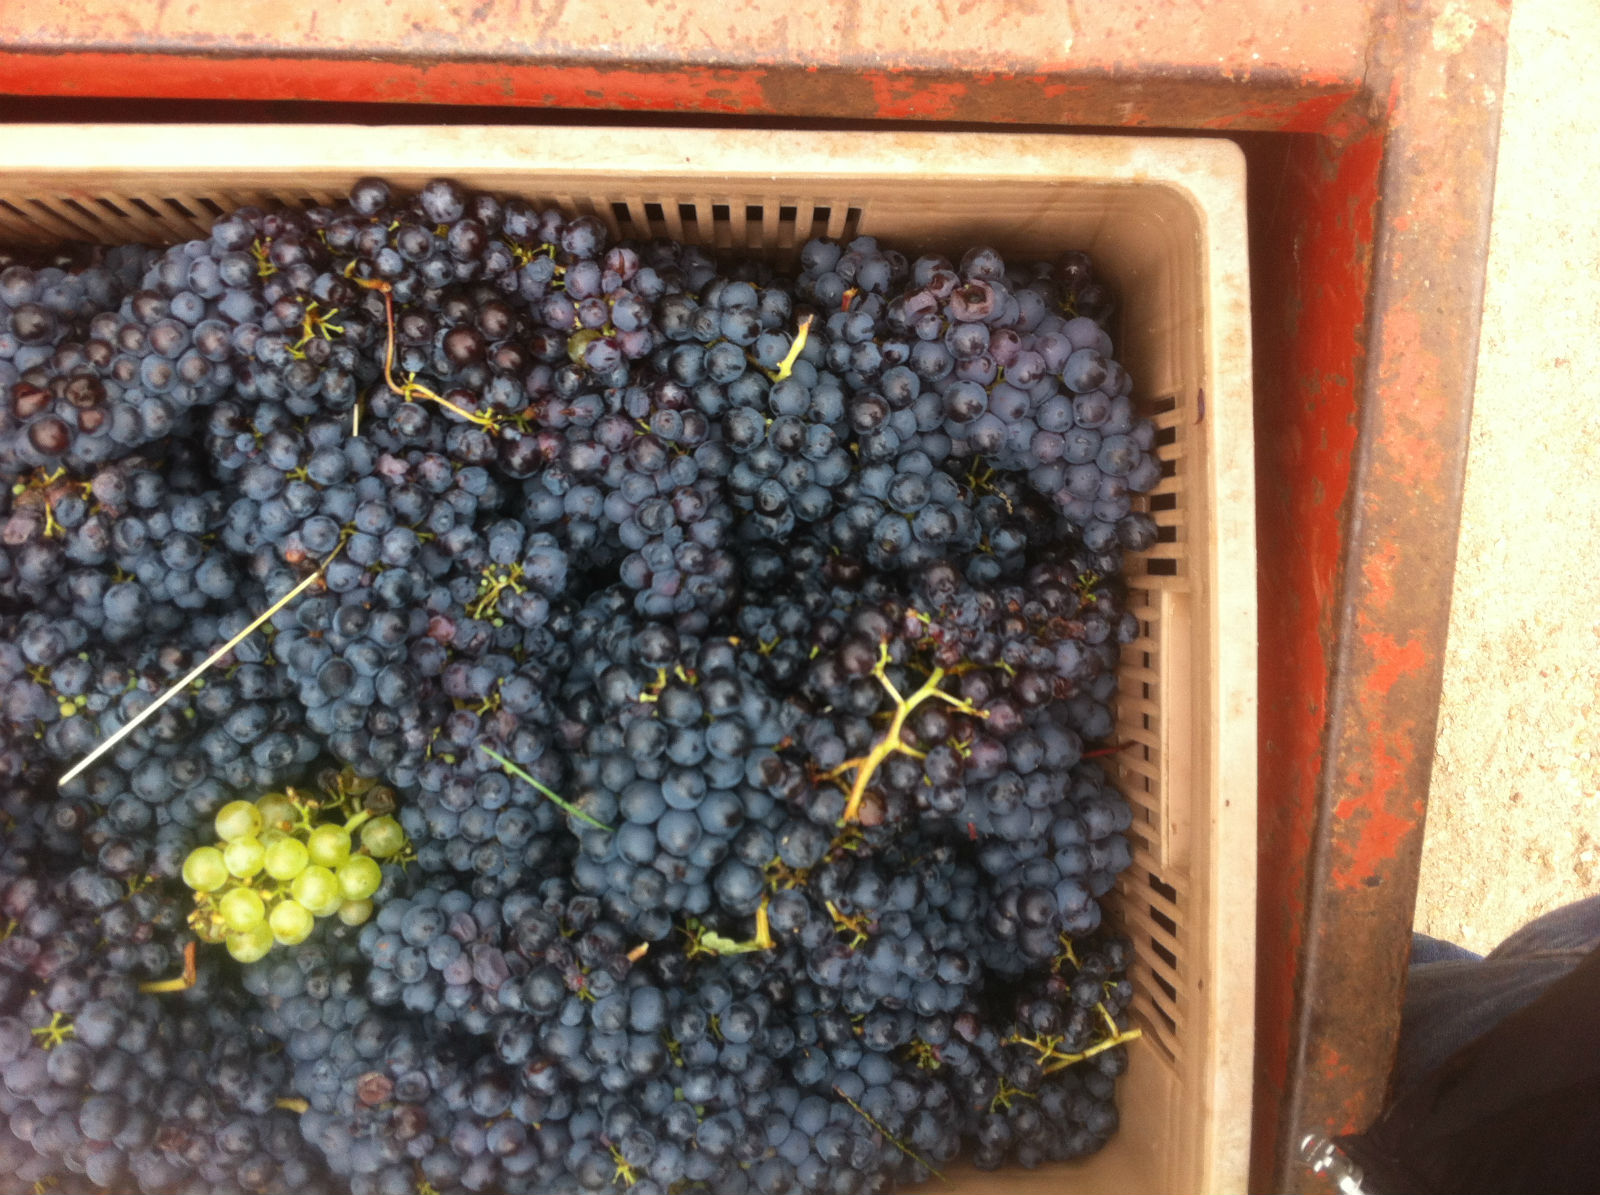 HiP Paris blog. Experiencing the wine harvest in France. Dedication to the craft results in the best grapes.